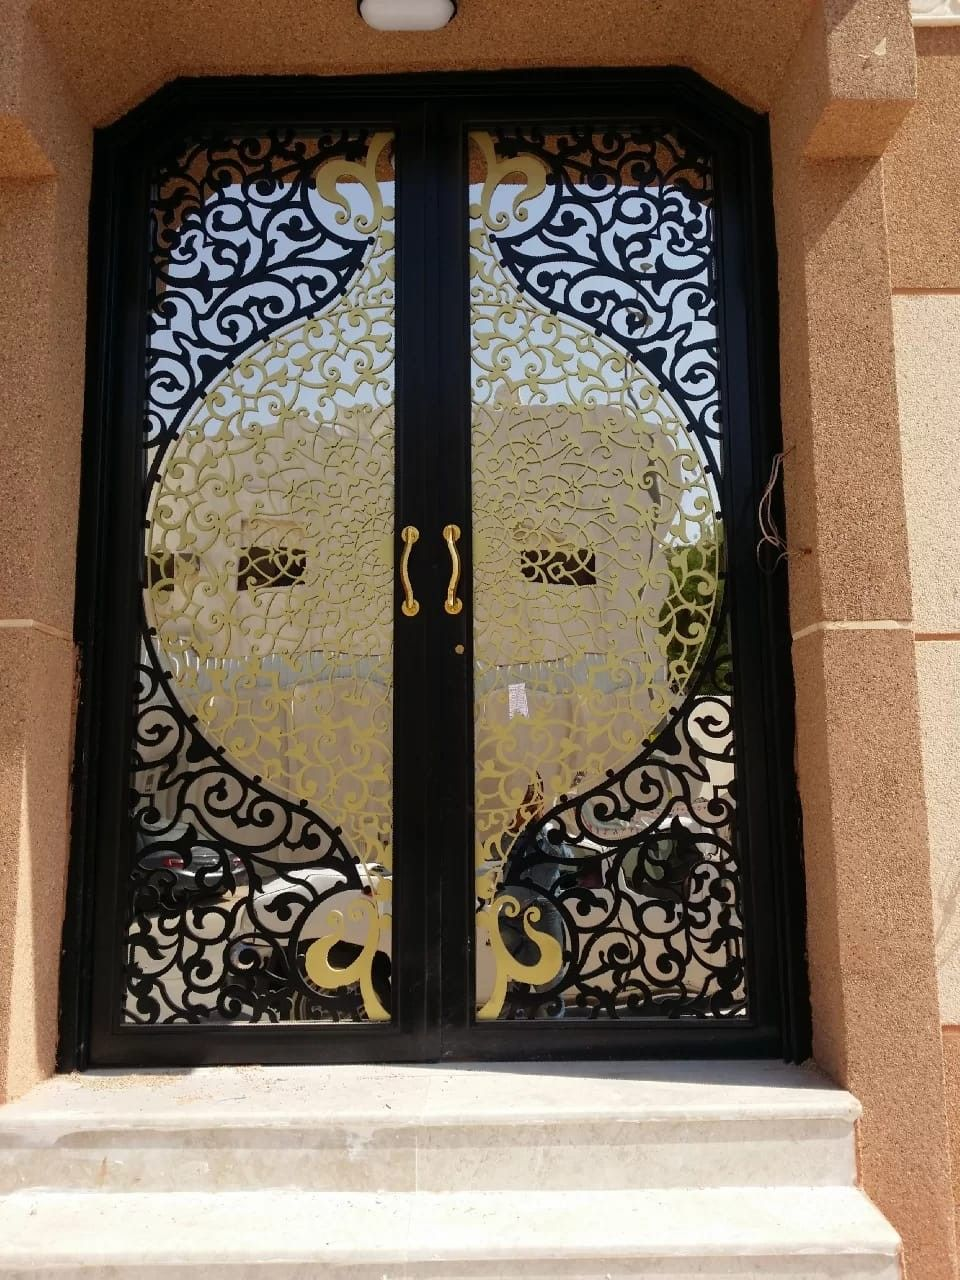 Laserdoors Metaldoors Lasercut Riyadhdoors Caddesign Arabiandoors Gate Gatedesign Door Doors Laser Nicedoor Iron Door Design Doors Interior Modern Door Design